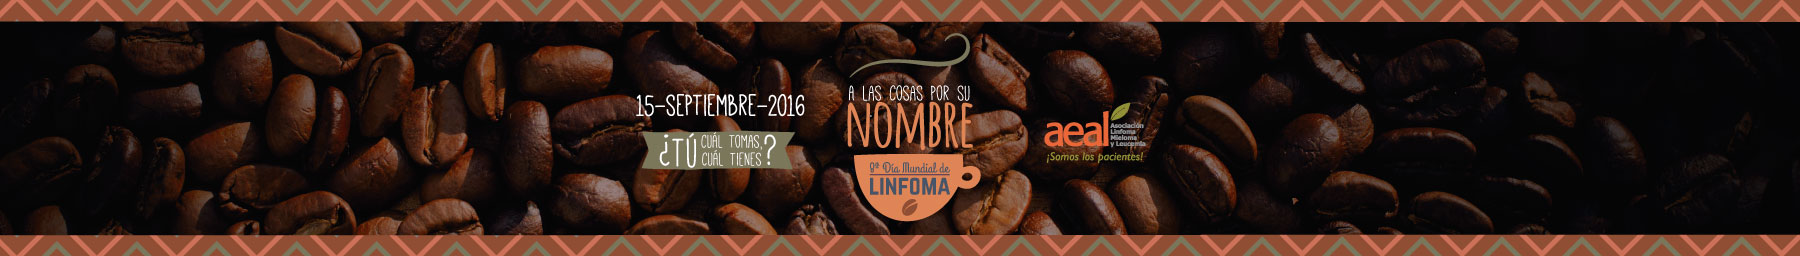 banner-web-linfoma-aeal-2016-2